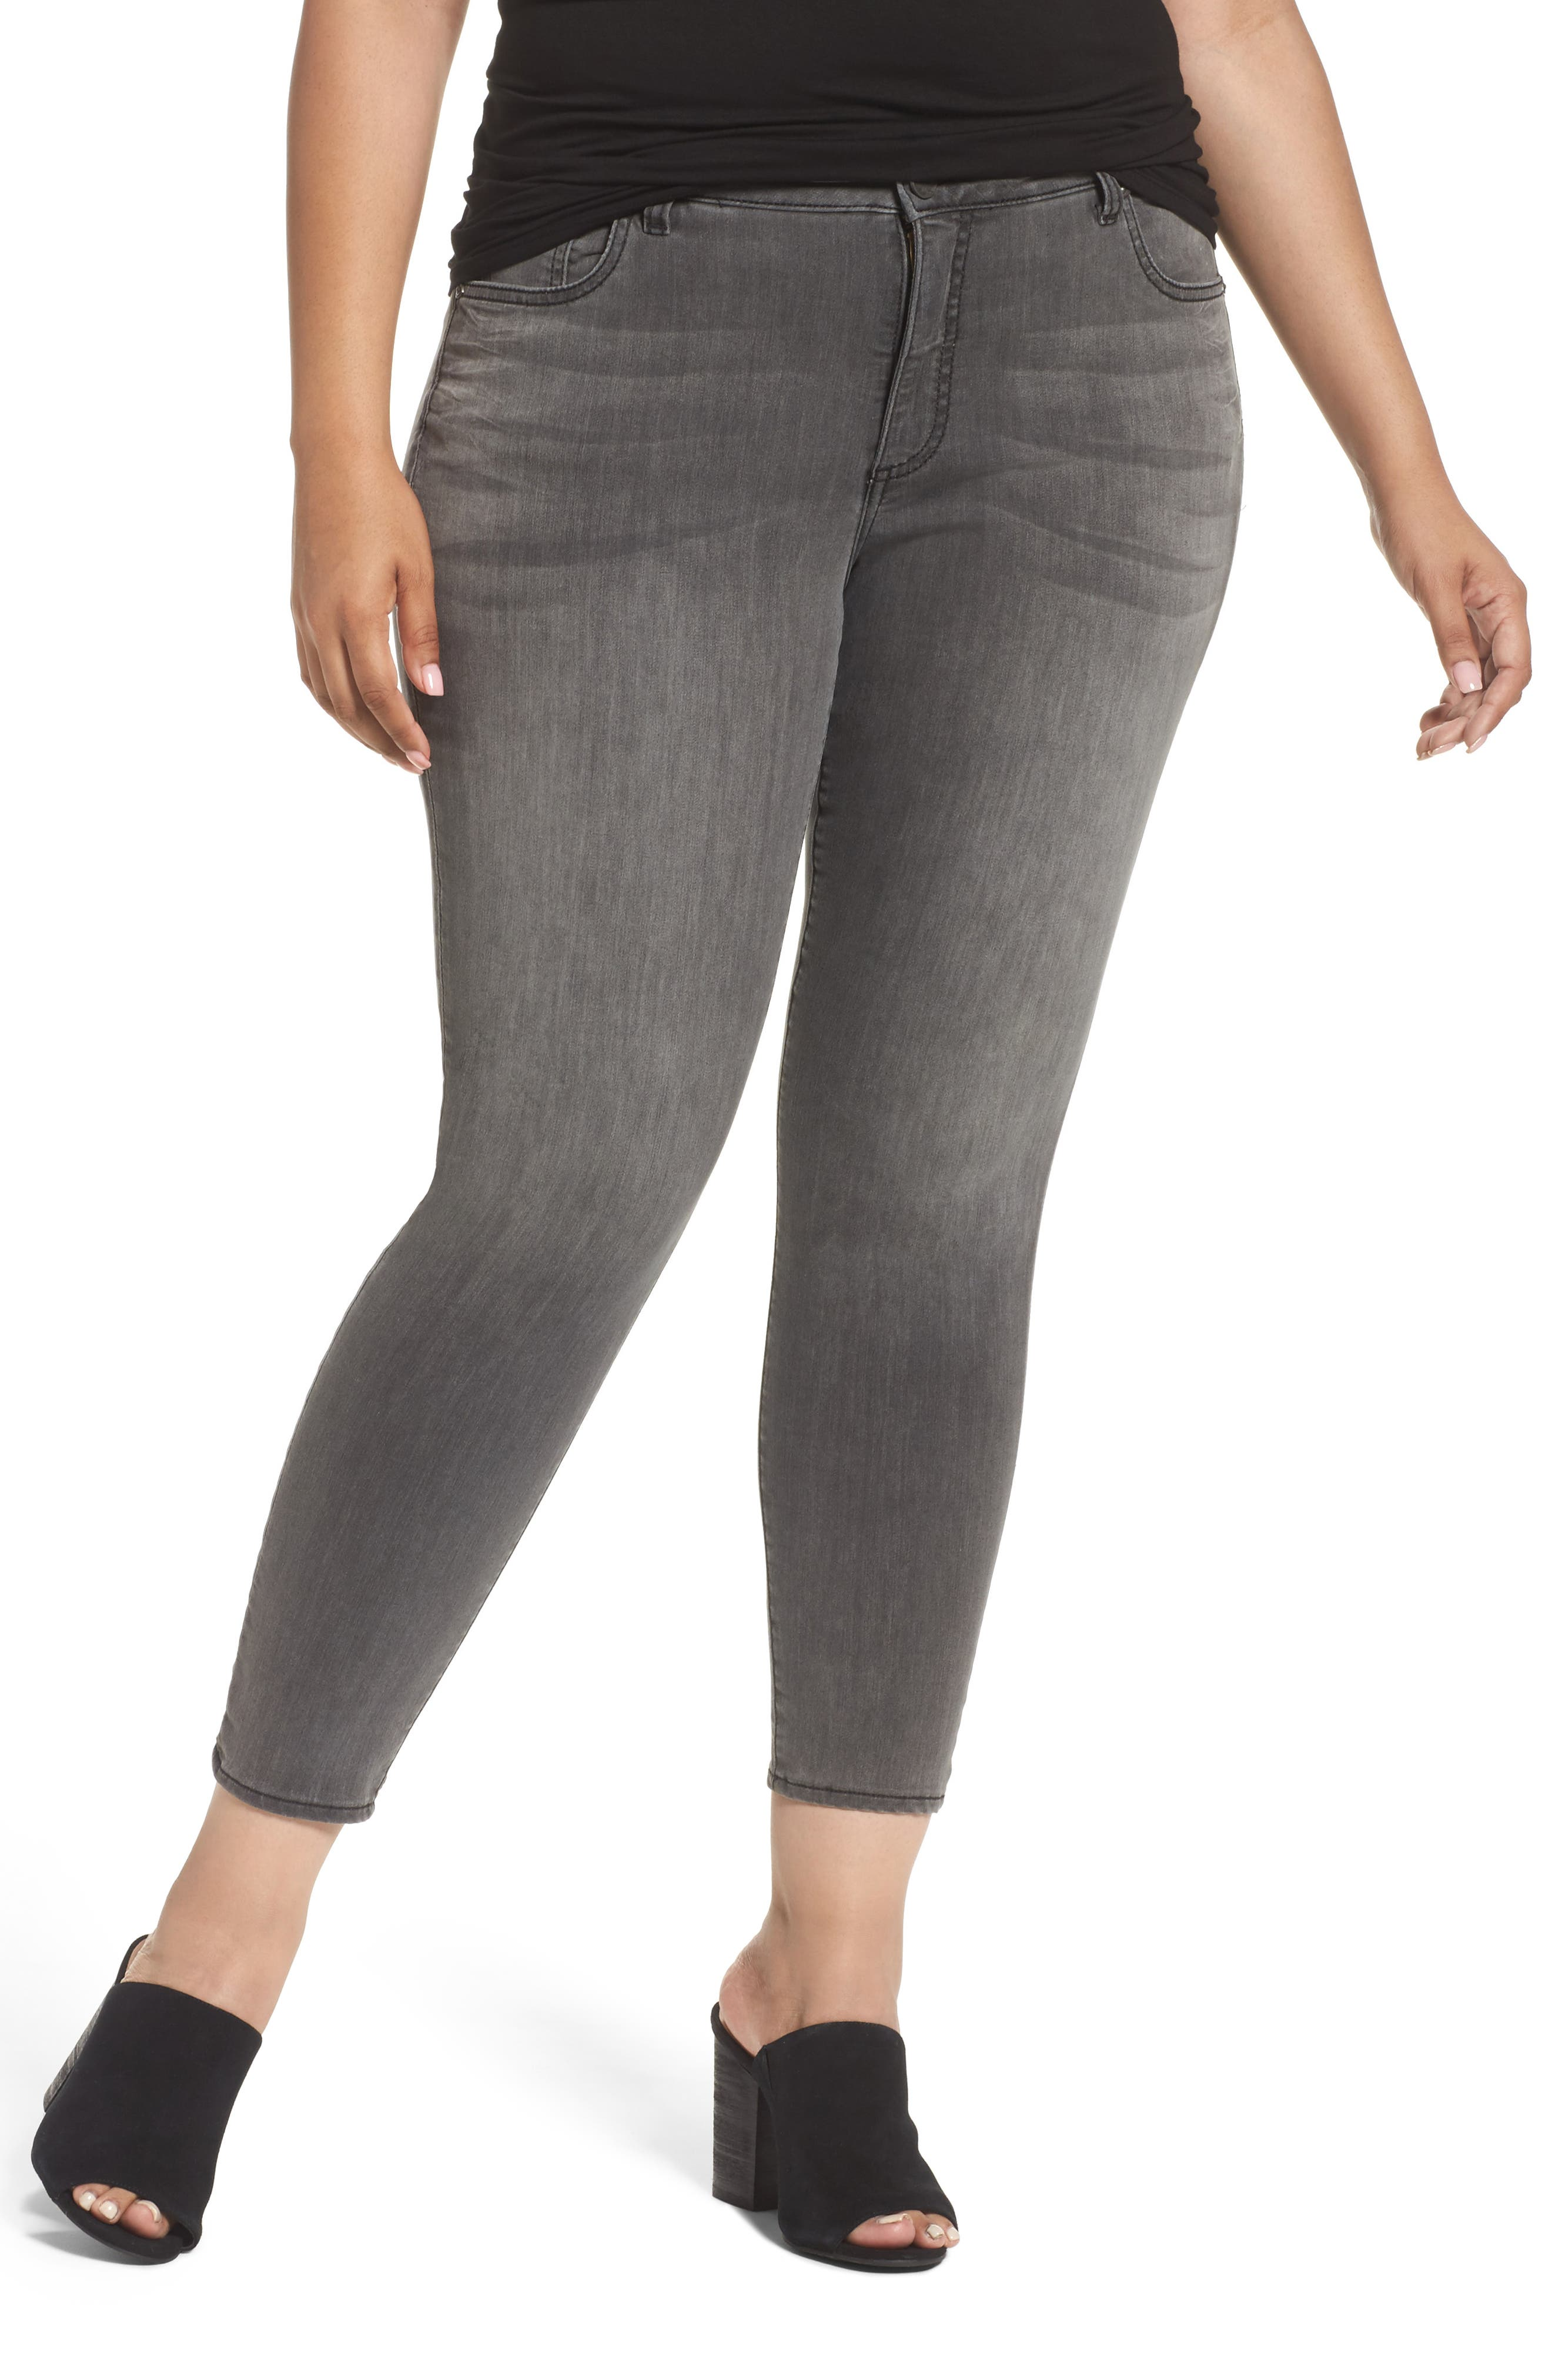 KUT from the Kloth Donna High Waist Skinny Jeans (Meritorious) (Plus Size)